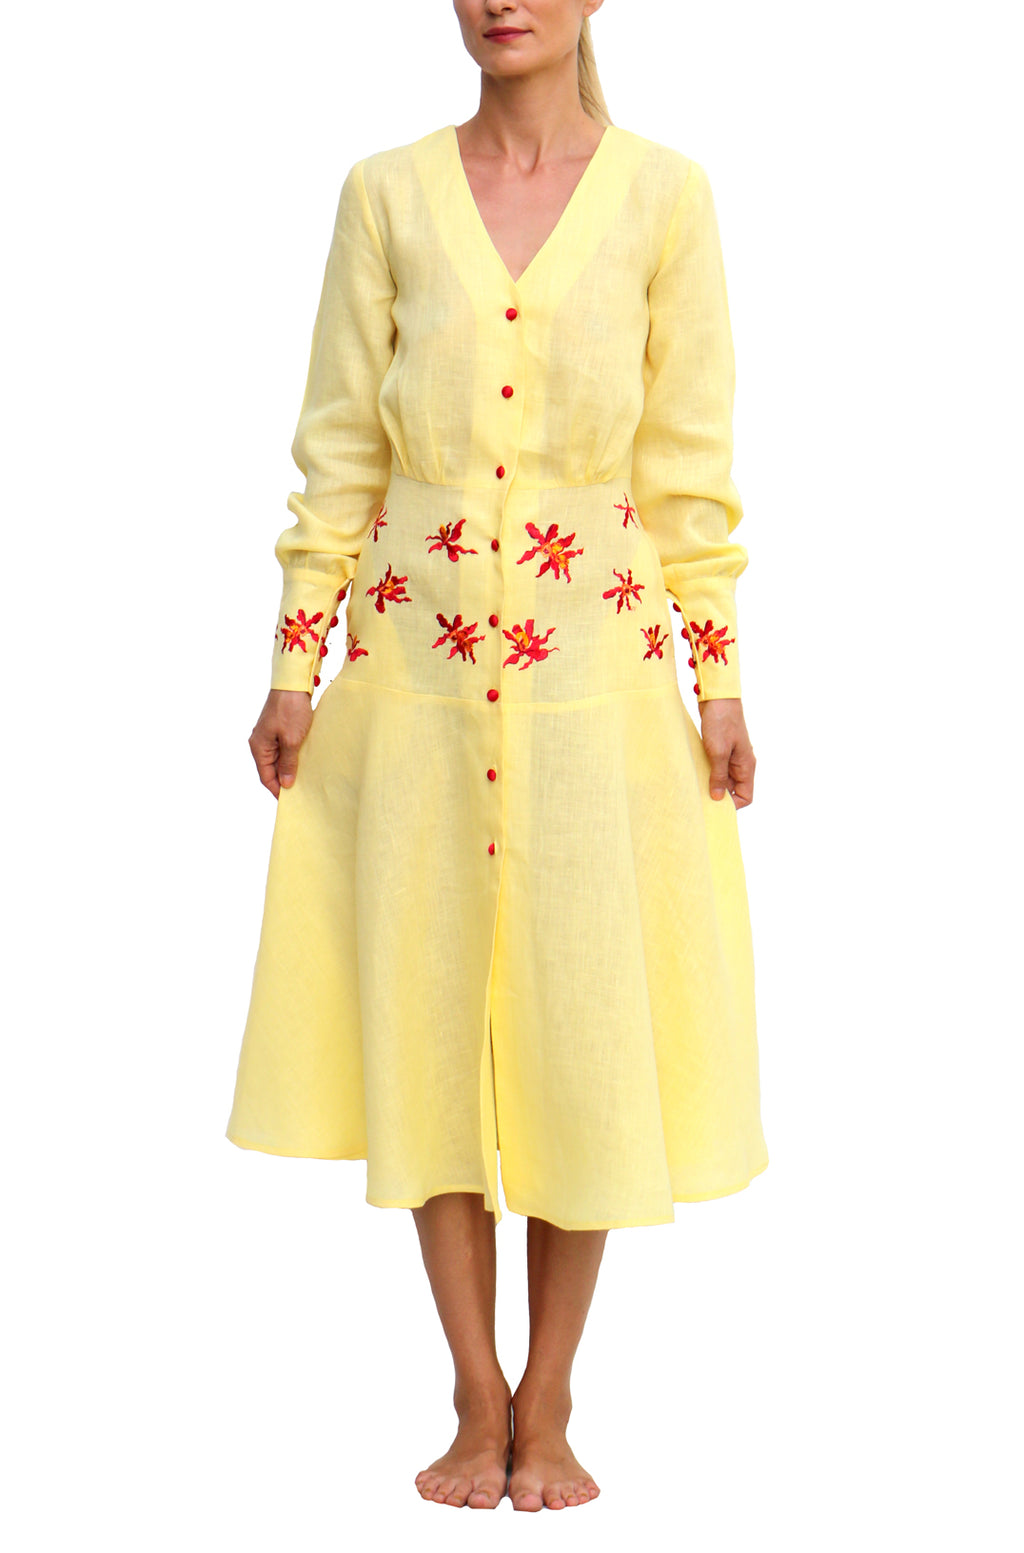 FANM MON Ambroise Yellow Midi Long Sleeves Embroidered Linen Dress